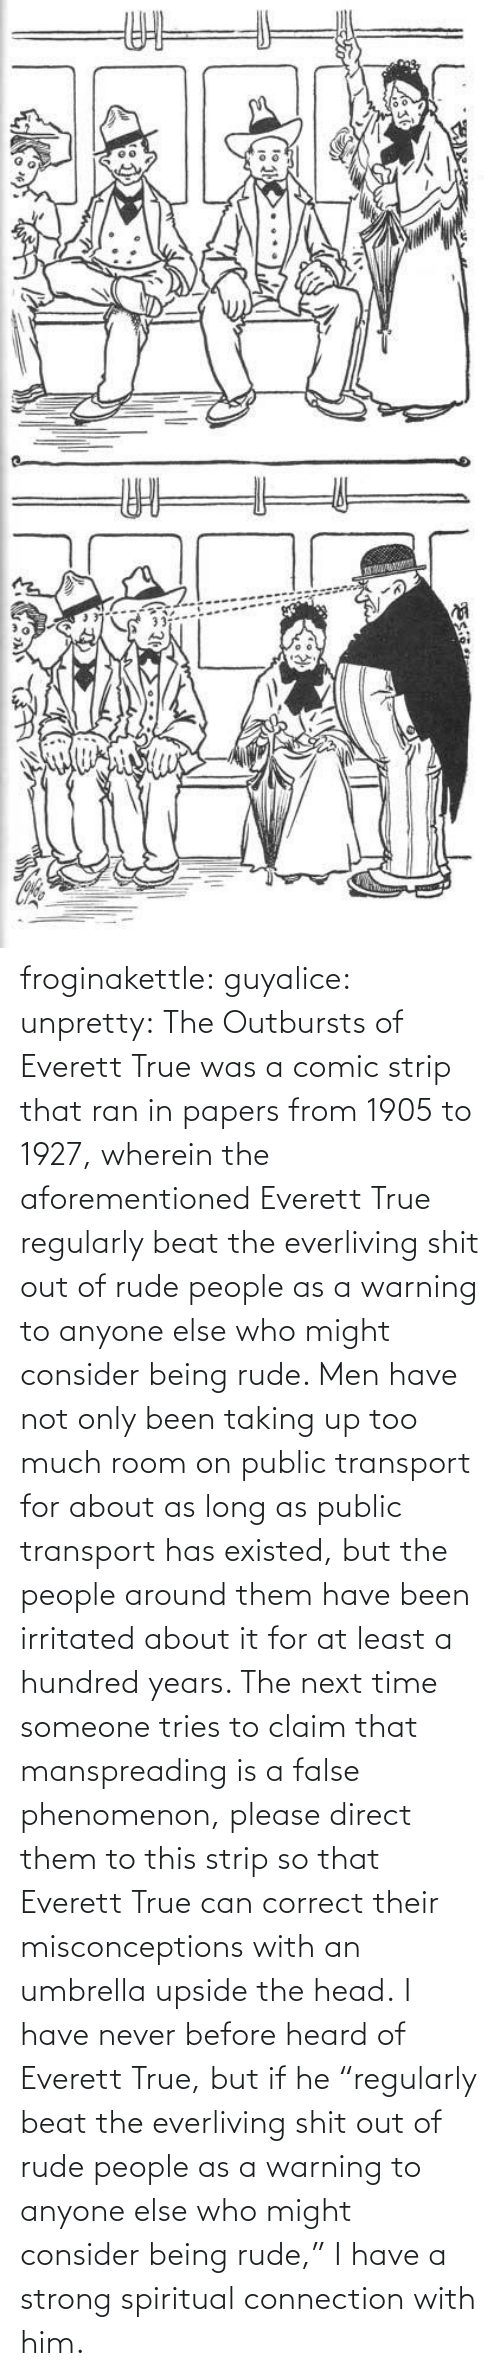 "Direct: ఇ  క froginakettle:  guyalice:  unpretty:  The Outbursts of Everett True was a comic strip that ran in papers from 1905 to 1927, wherein the aforementioned Everett True regularly beat the everliving shit out of rude people as a warning to anyone else who might consider being rude. Men have not only been taking up too much room on public transport for about as long as public transport has existed, but the people around them have been irritated about it for at least a hundred years. The next time someone tries to claim that manspreading is a false phenomenon, please direct them to this strip so that Everett True can correct their misconceptions with an umbrella upside the head.  I have never before heard of Everett True, but if he ""regularly beat the everliving shit out of rude people as a warning to anyone else who might consider being rude,"" I have a strong spiritual connection with him."